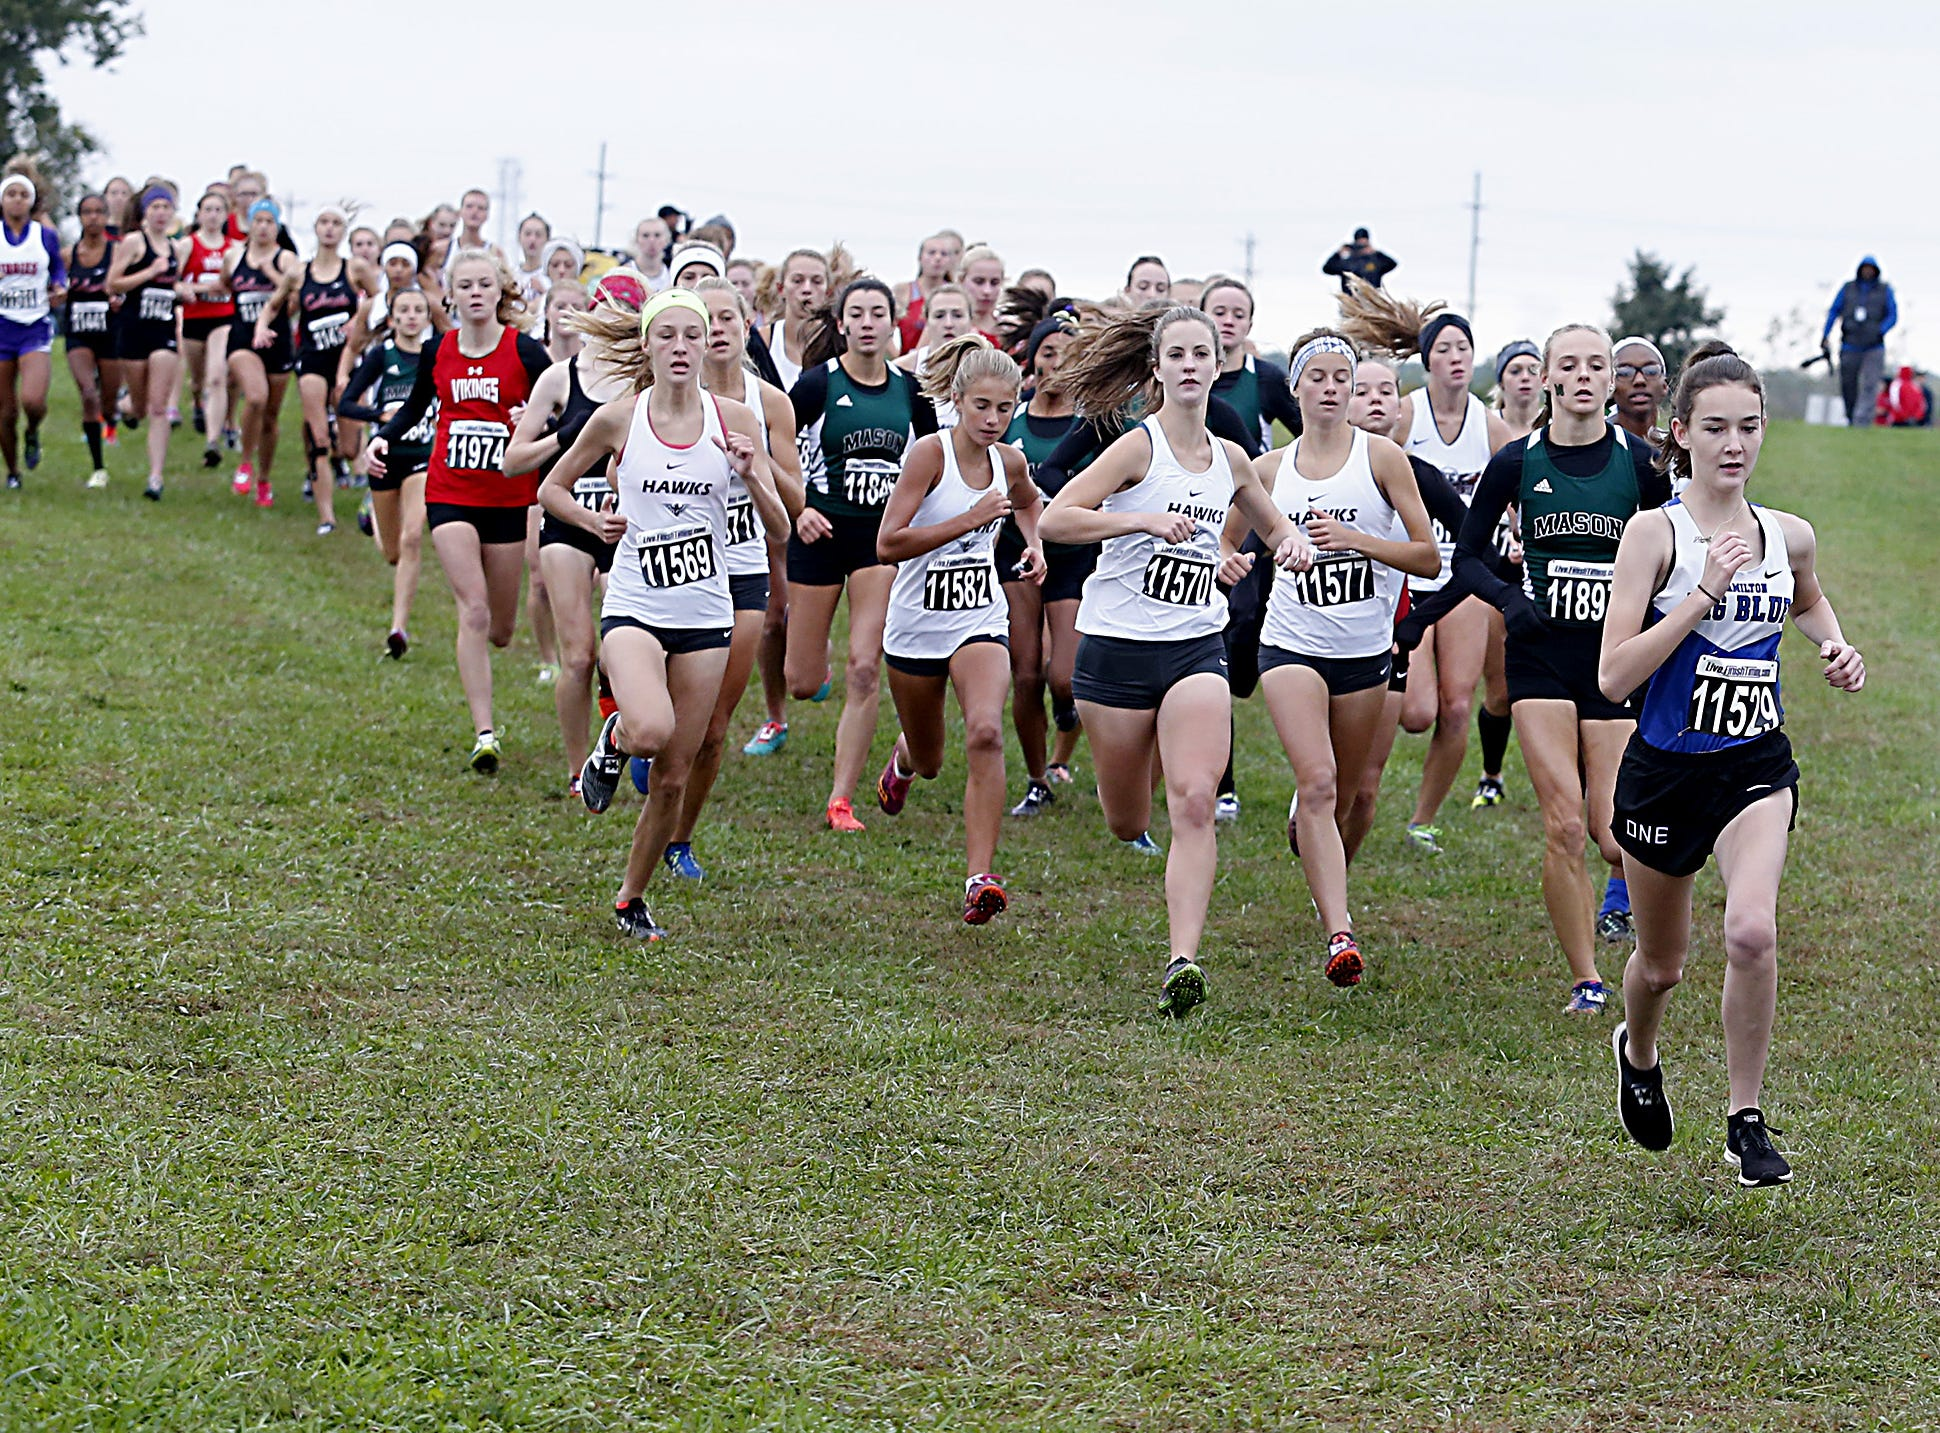 Hamilton's Kinzie Ballinger leads the girls varsity race at the start during the Greater Miami Conference Girls and Boys Cross Country Championships at Voice of America Park in West Chester Saturday, Oct. 13, 2018.